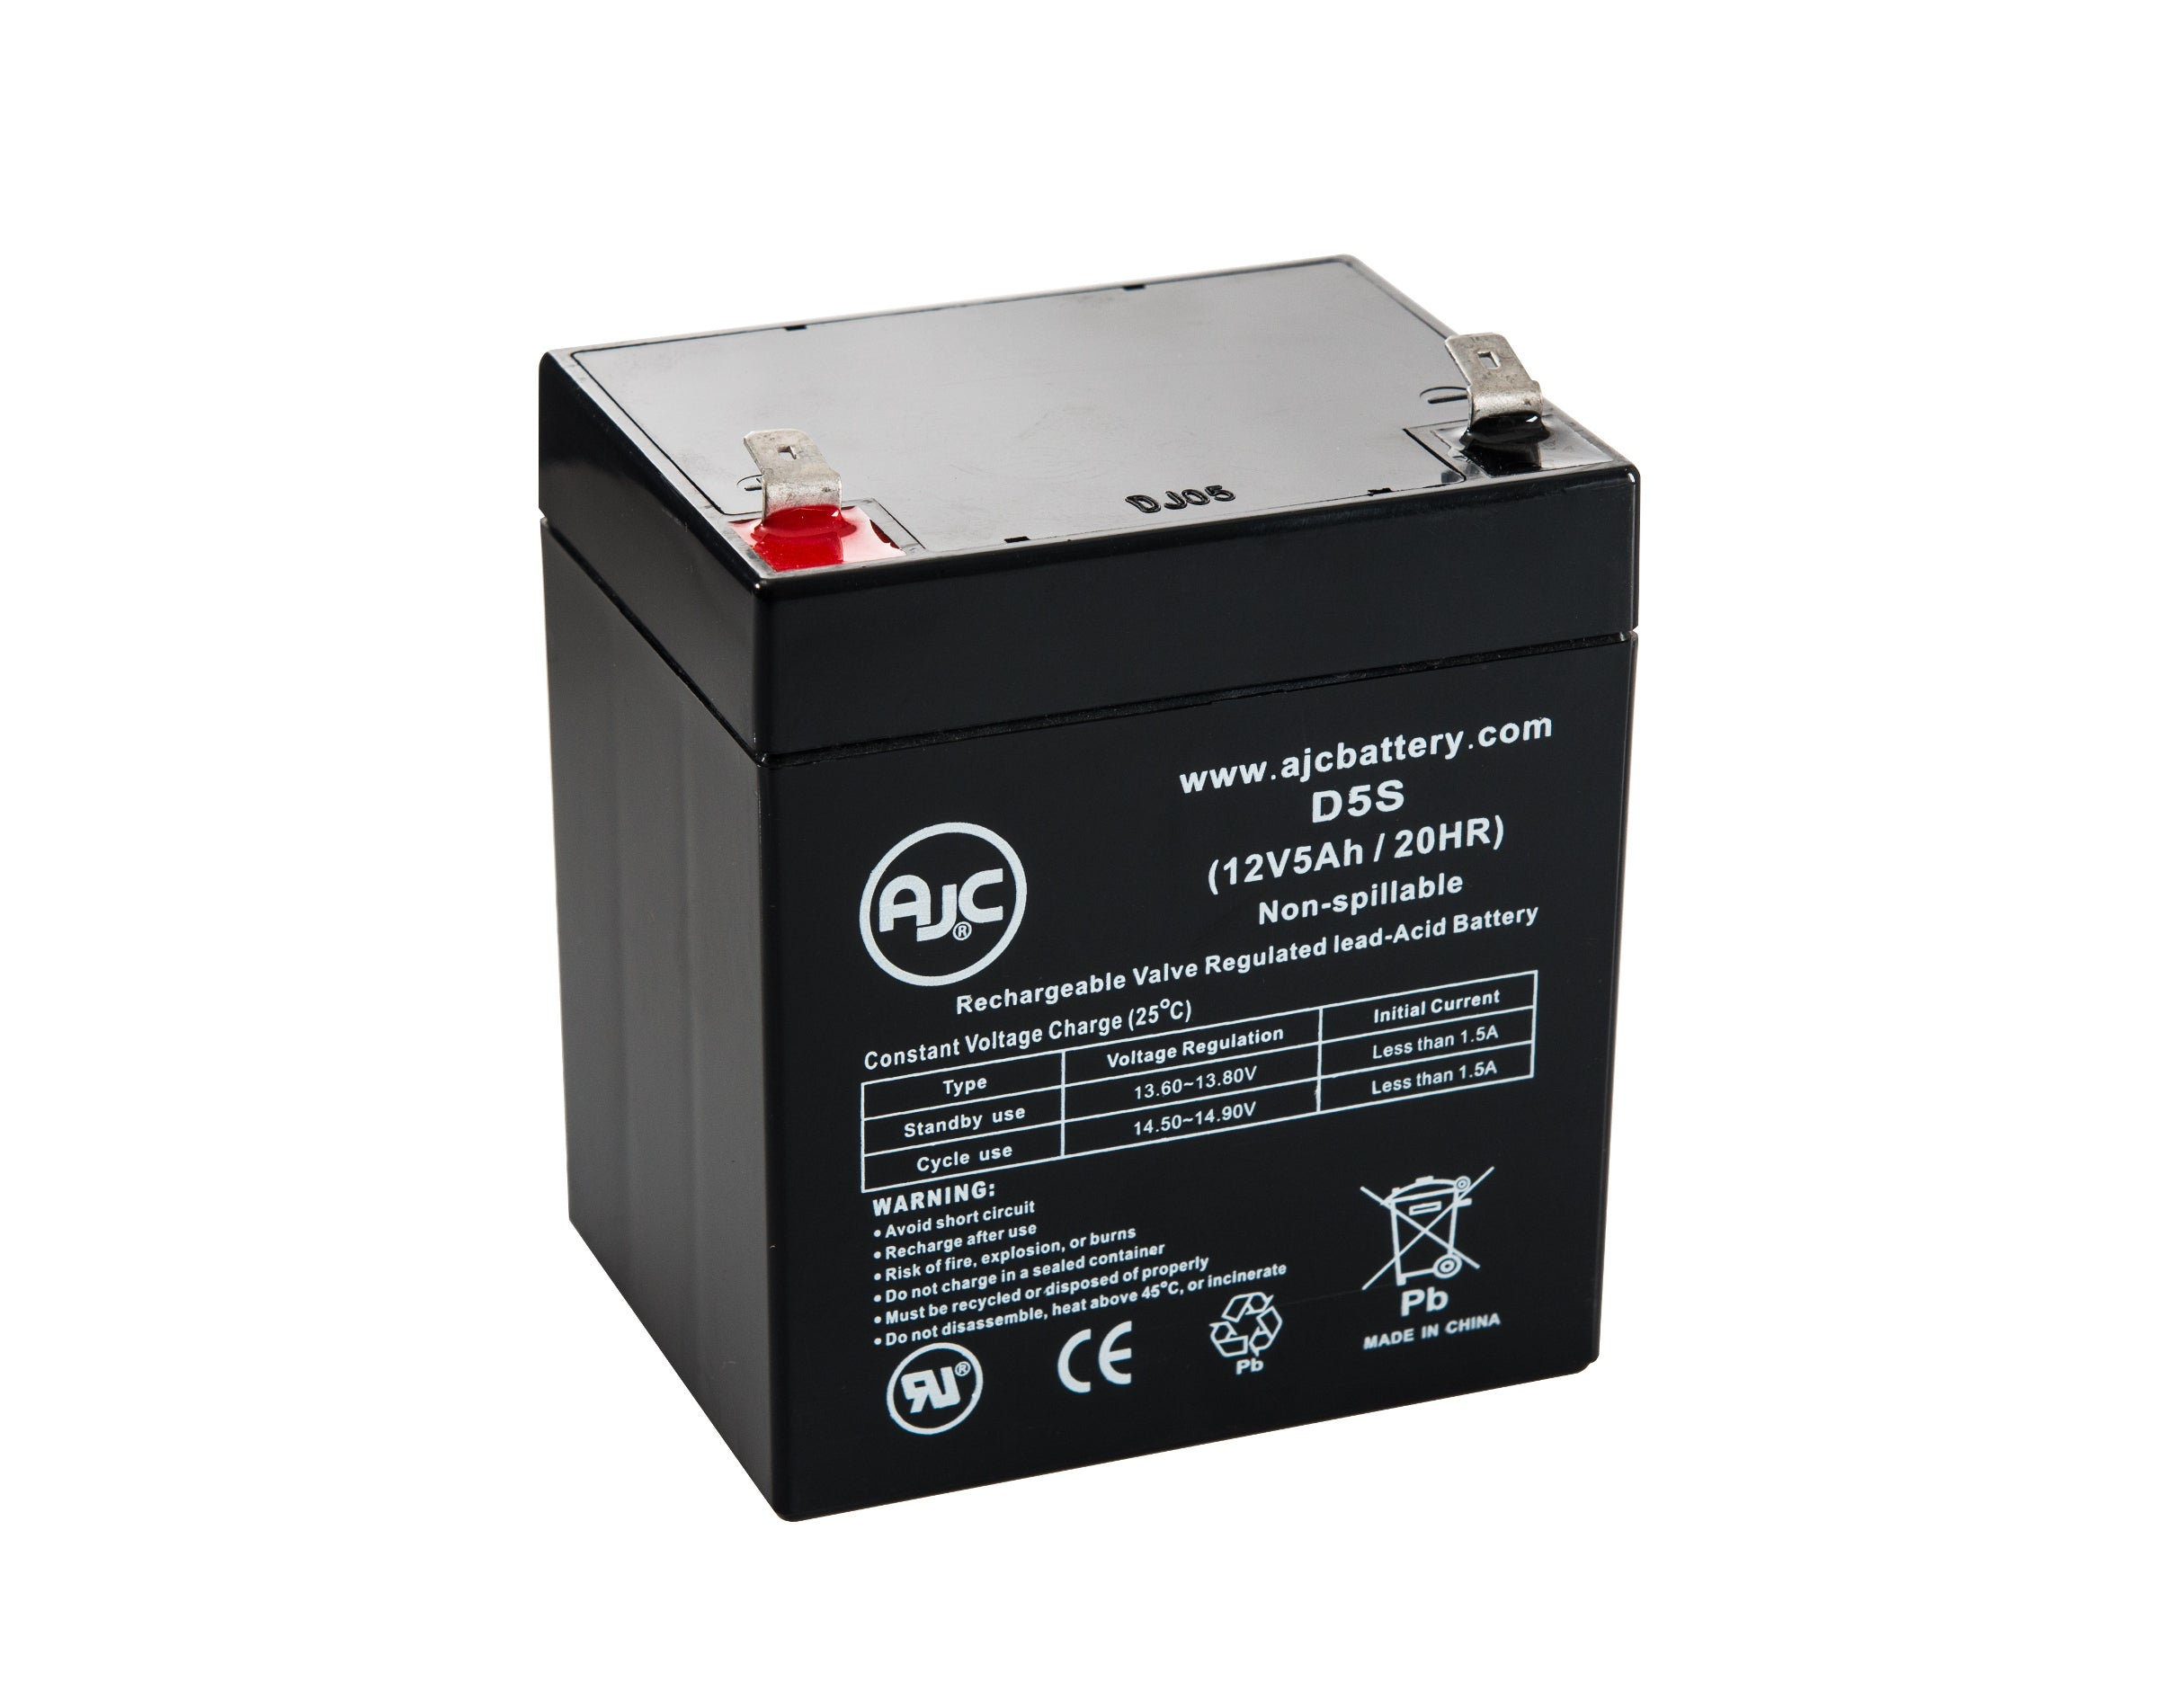 This is an AJC Brand Replacement DSC Power 832 12V 5Ah Alarm Battery